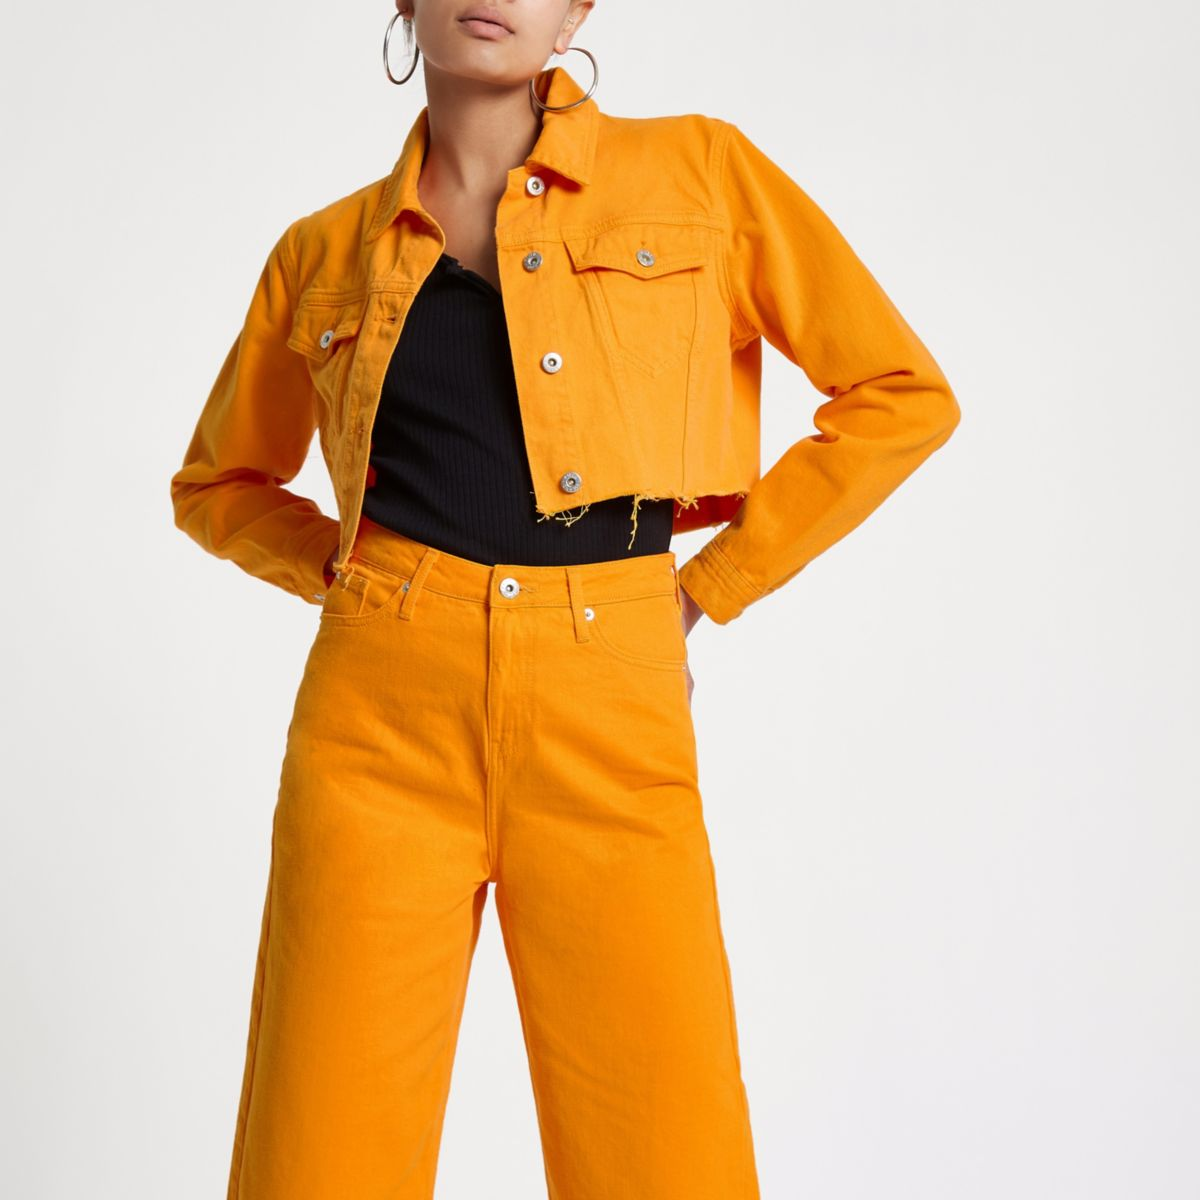 Orange Raw Hem Cropped Denim Jacket                                    Orange Denim Pencil Skirt by River Island